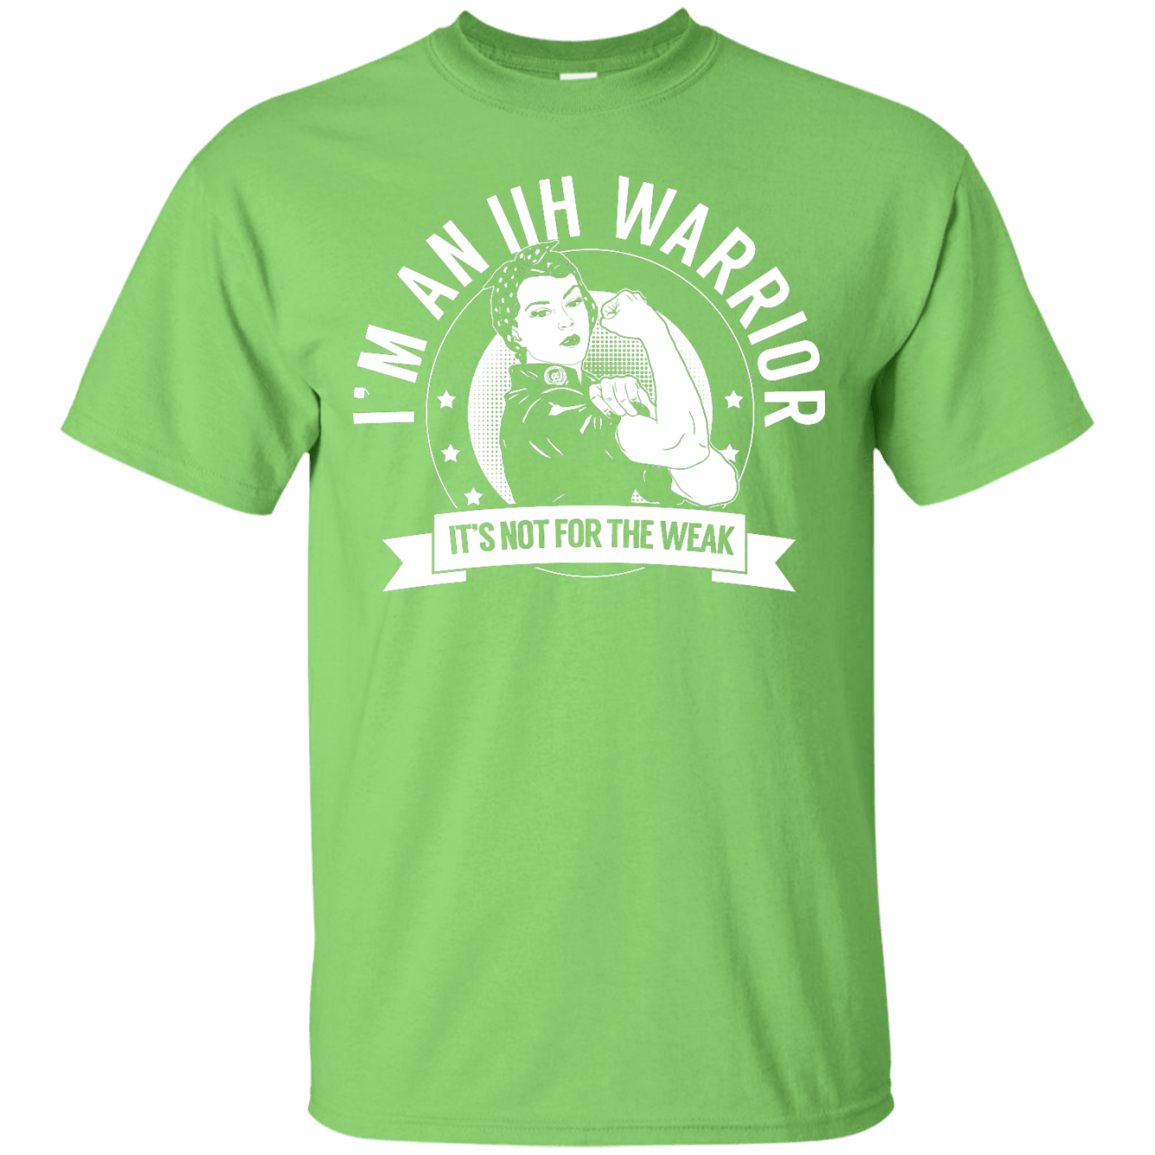 Short Sleeve - Idiopathic Intracranial Hypertension - IIH Warrior Not For The Weak Unisex Shirt